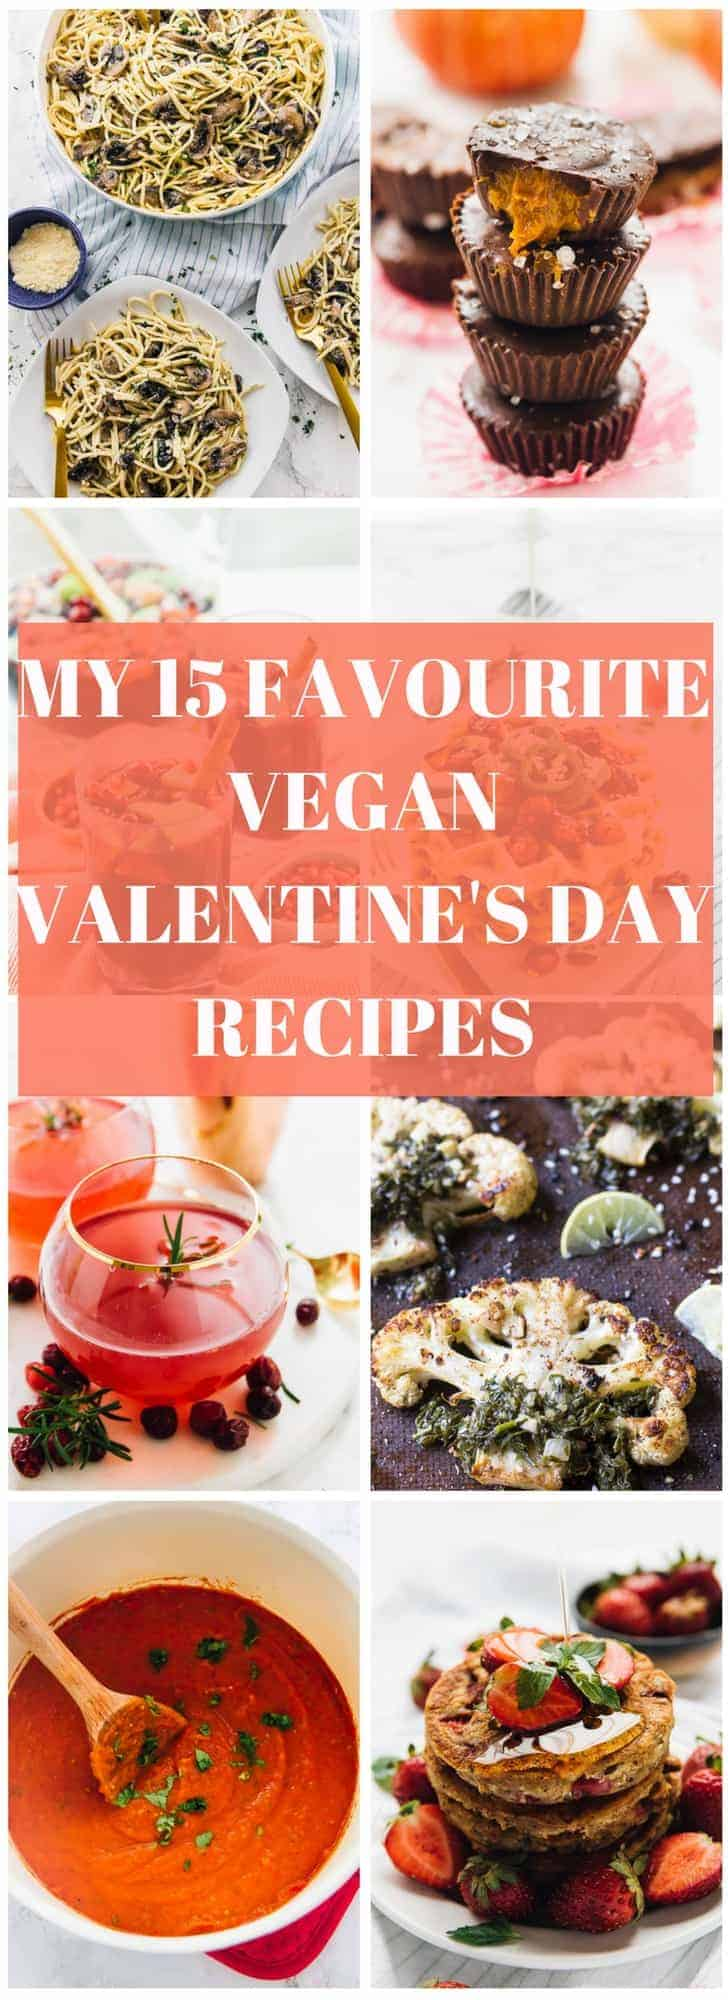 A montage of valentine's day recipes with text over it.